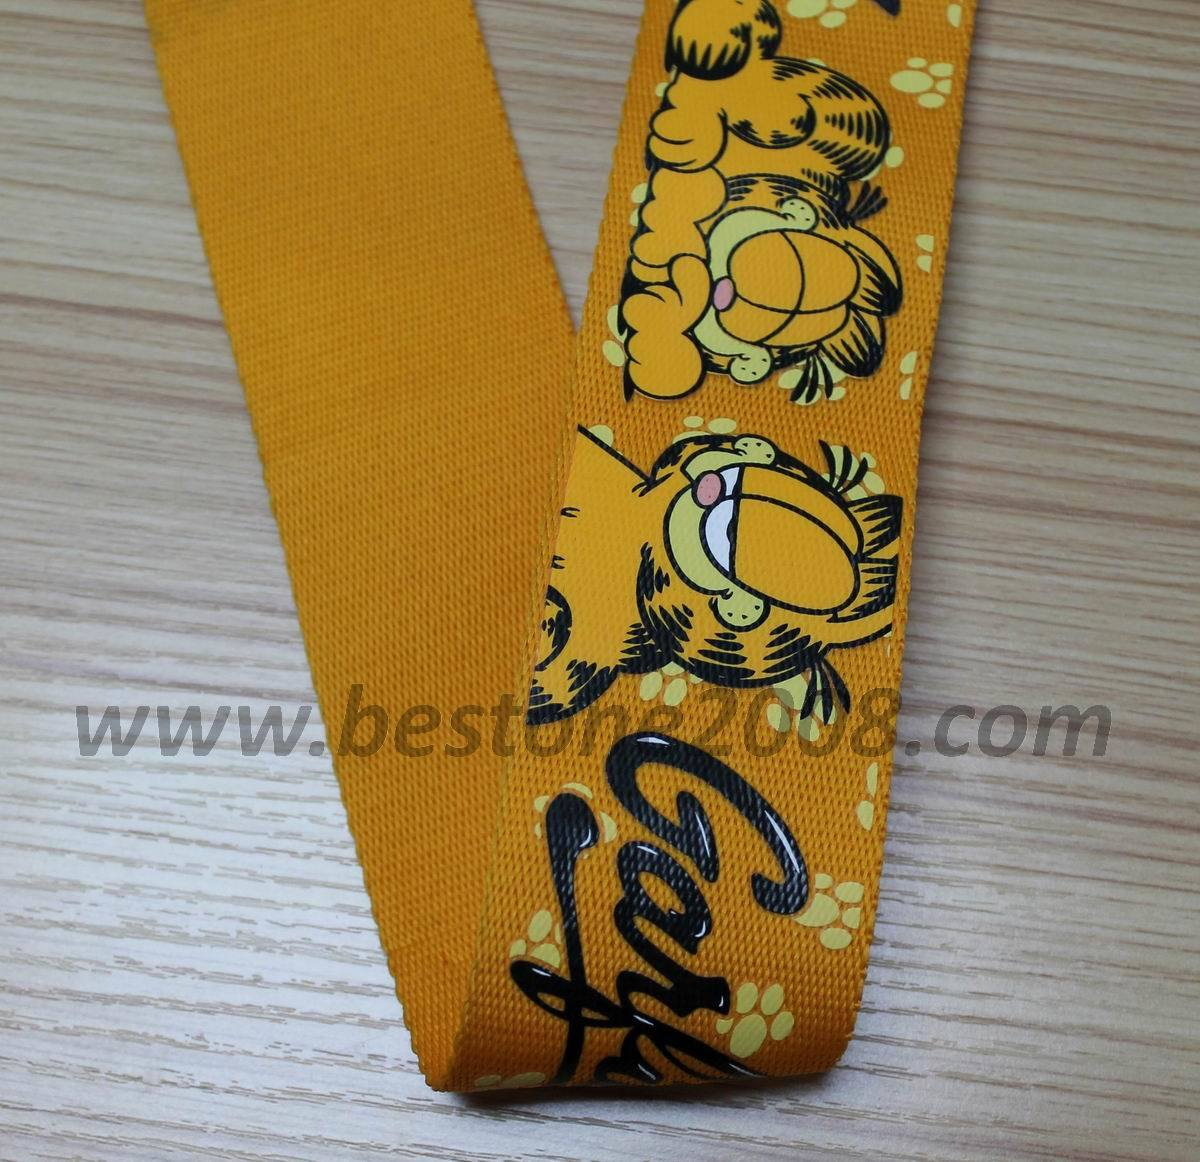 Factory High Quality Printing Webbing for Garment #1312-2